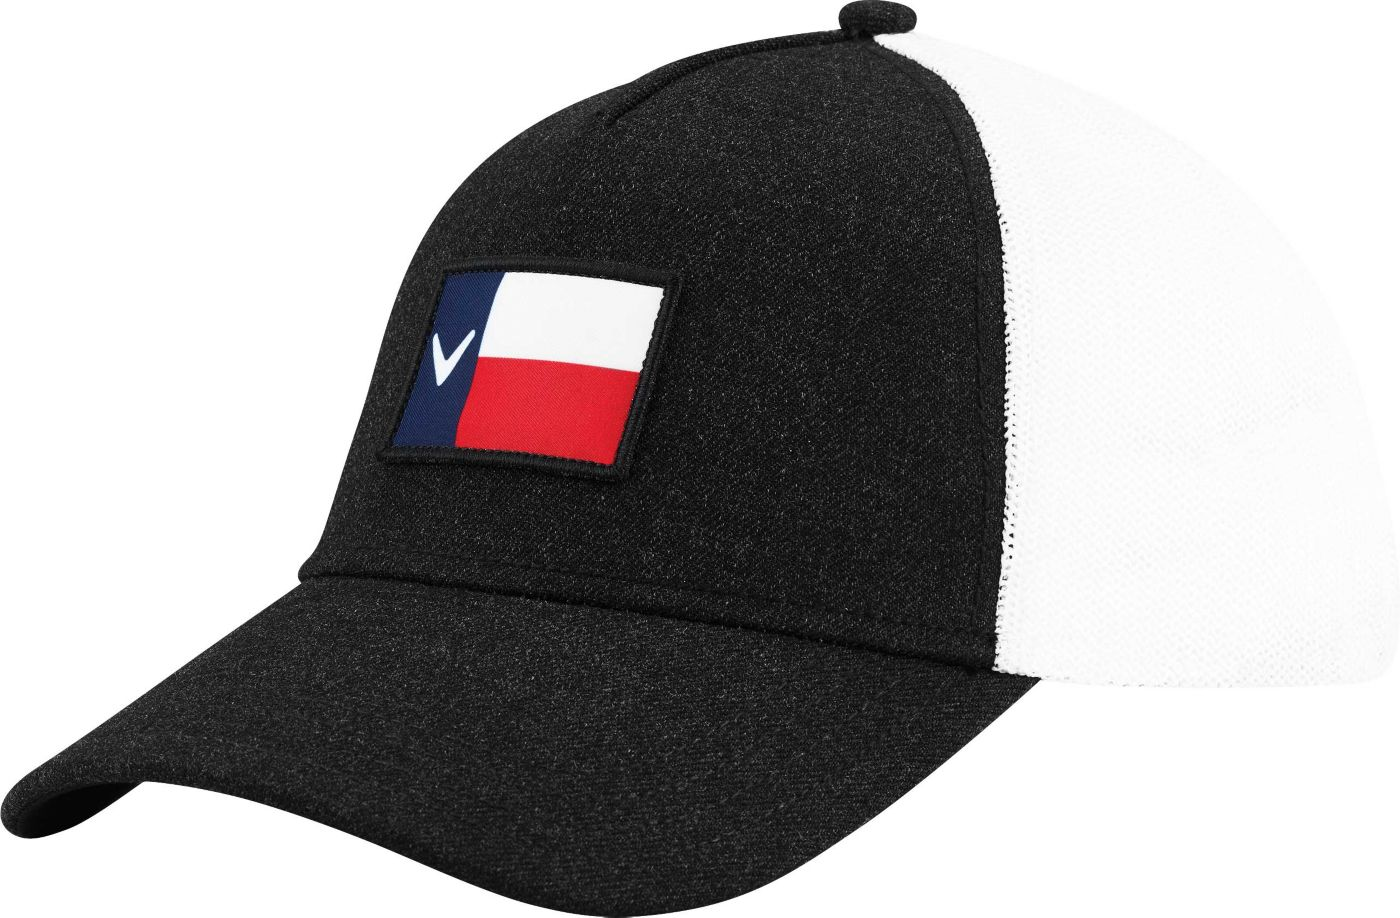 Callaway Men's Texas Trucker Golf Hat